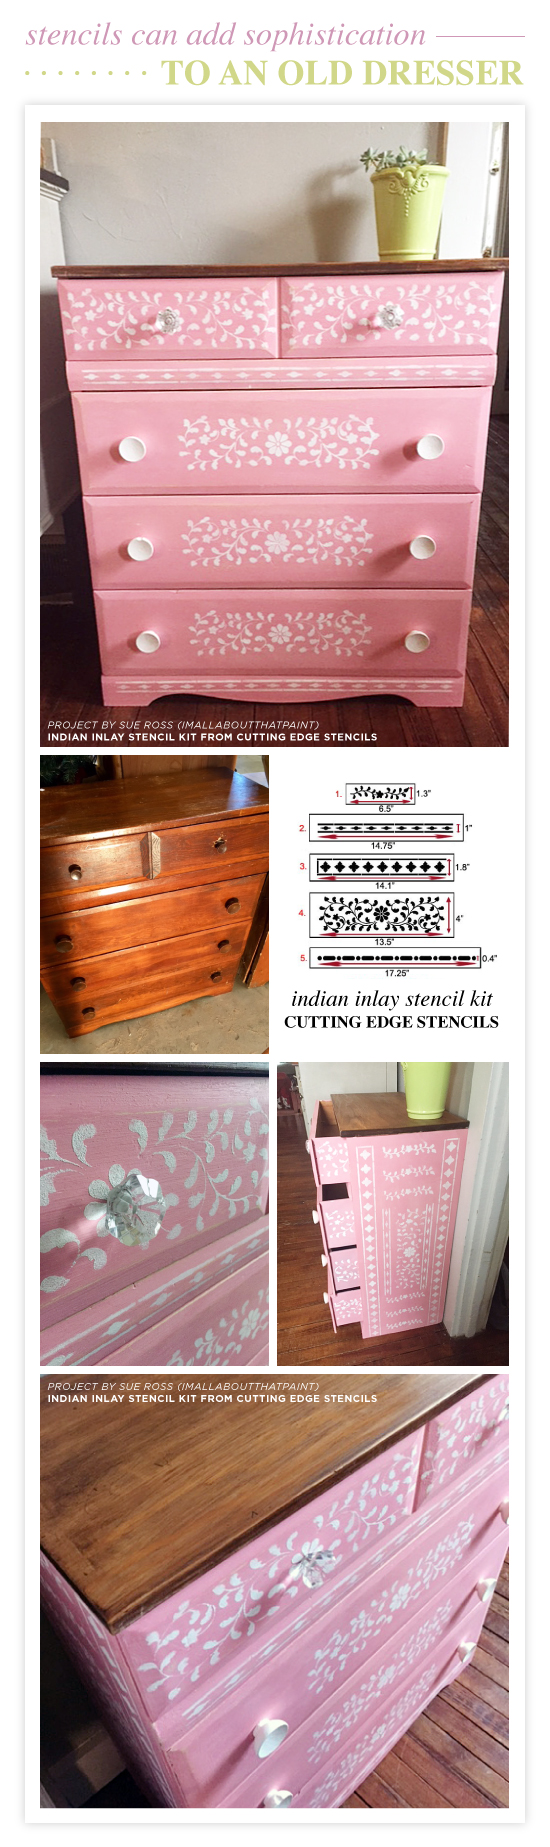 Cutting Edge Stencils shares how to stencil a pink dresser using the Indian Inlay Stencil Kit designed by Kim Myles. http://www.cuttingedgestencils.com/indian-inlay-stencil-furniture.html